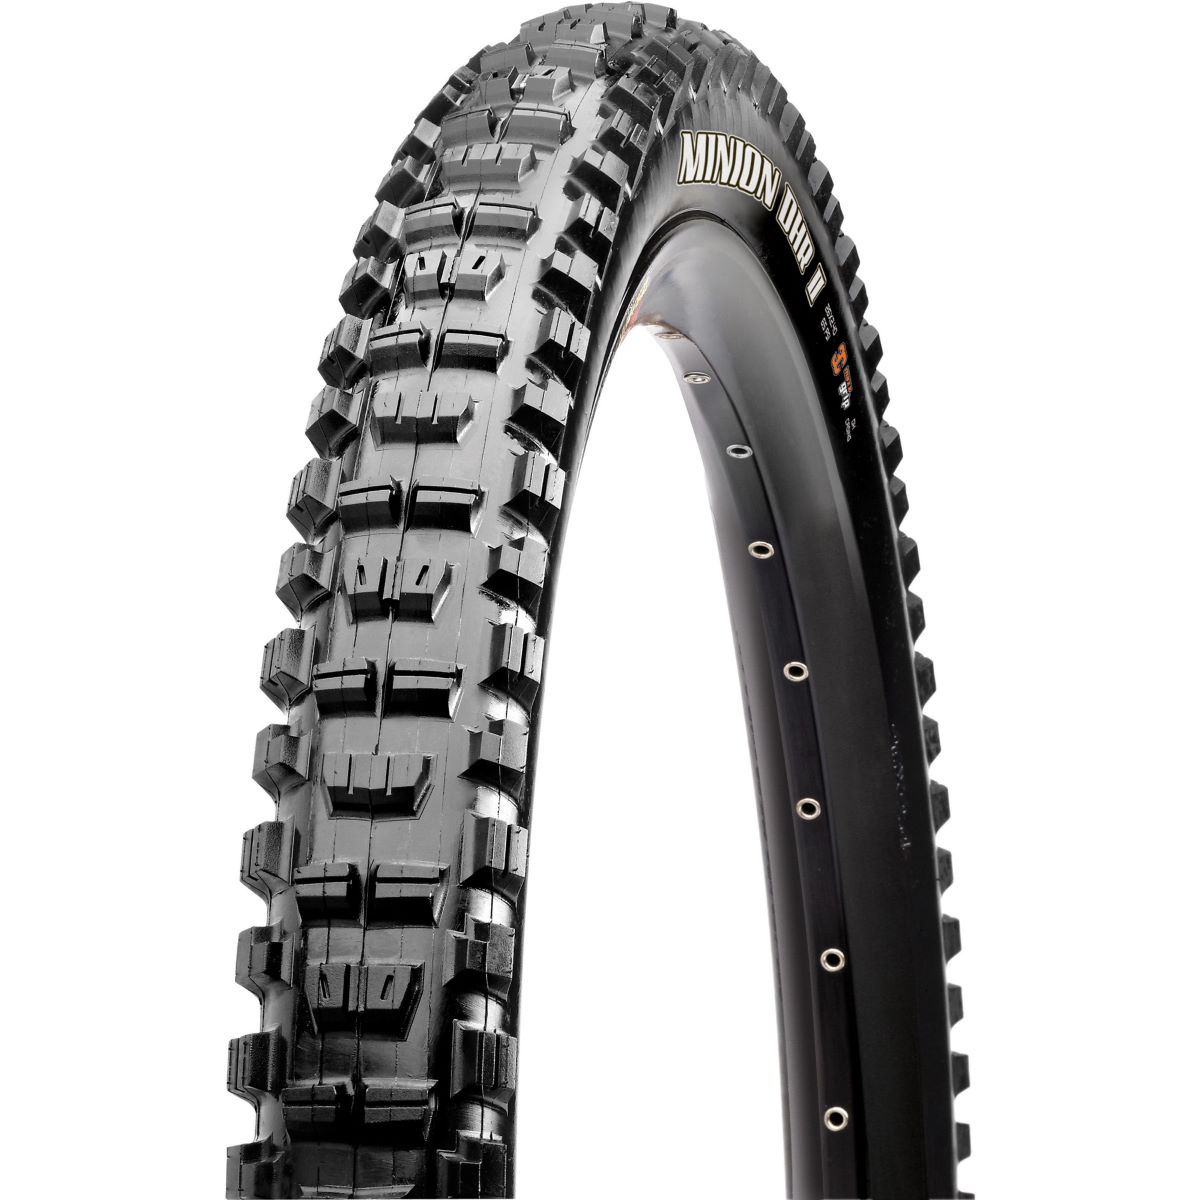 Maxxis Maxxis Minion DHR II Wide Trail - EXO - TR - 3C   Tyres